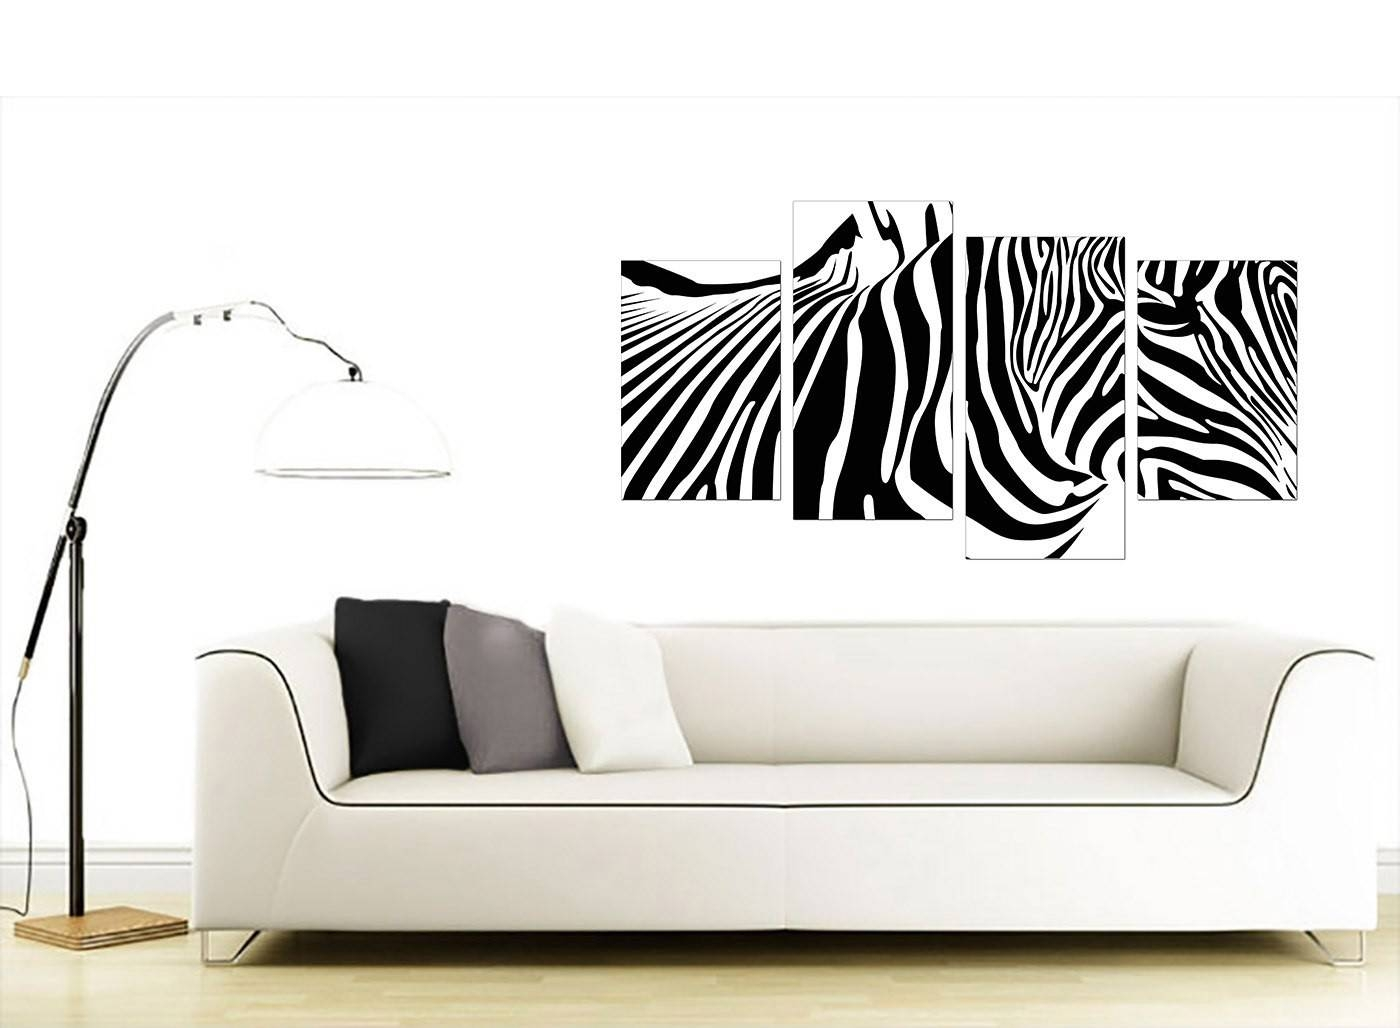 Animal Canvas Wall Art Of Zebra – For Living Room With Regard To Current Animal Canvas Wall Art (View 17 of 20)